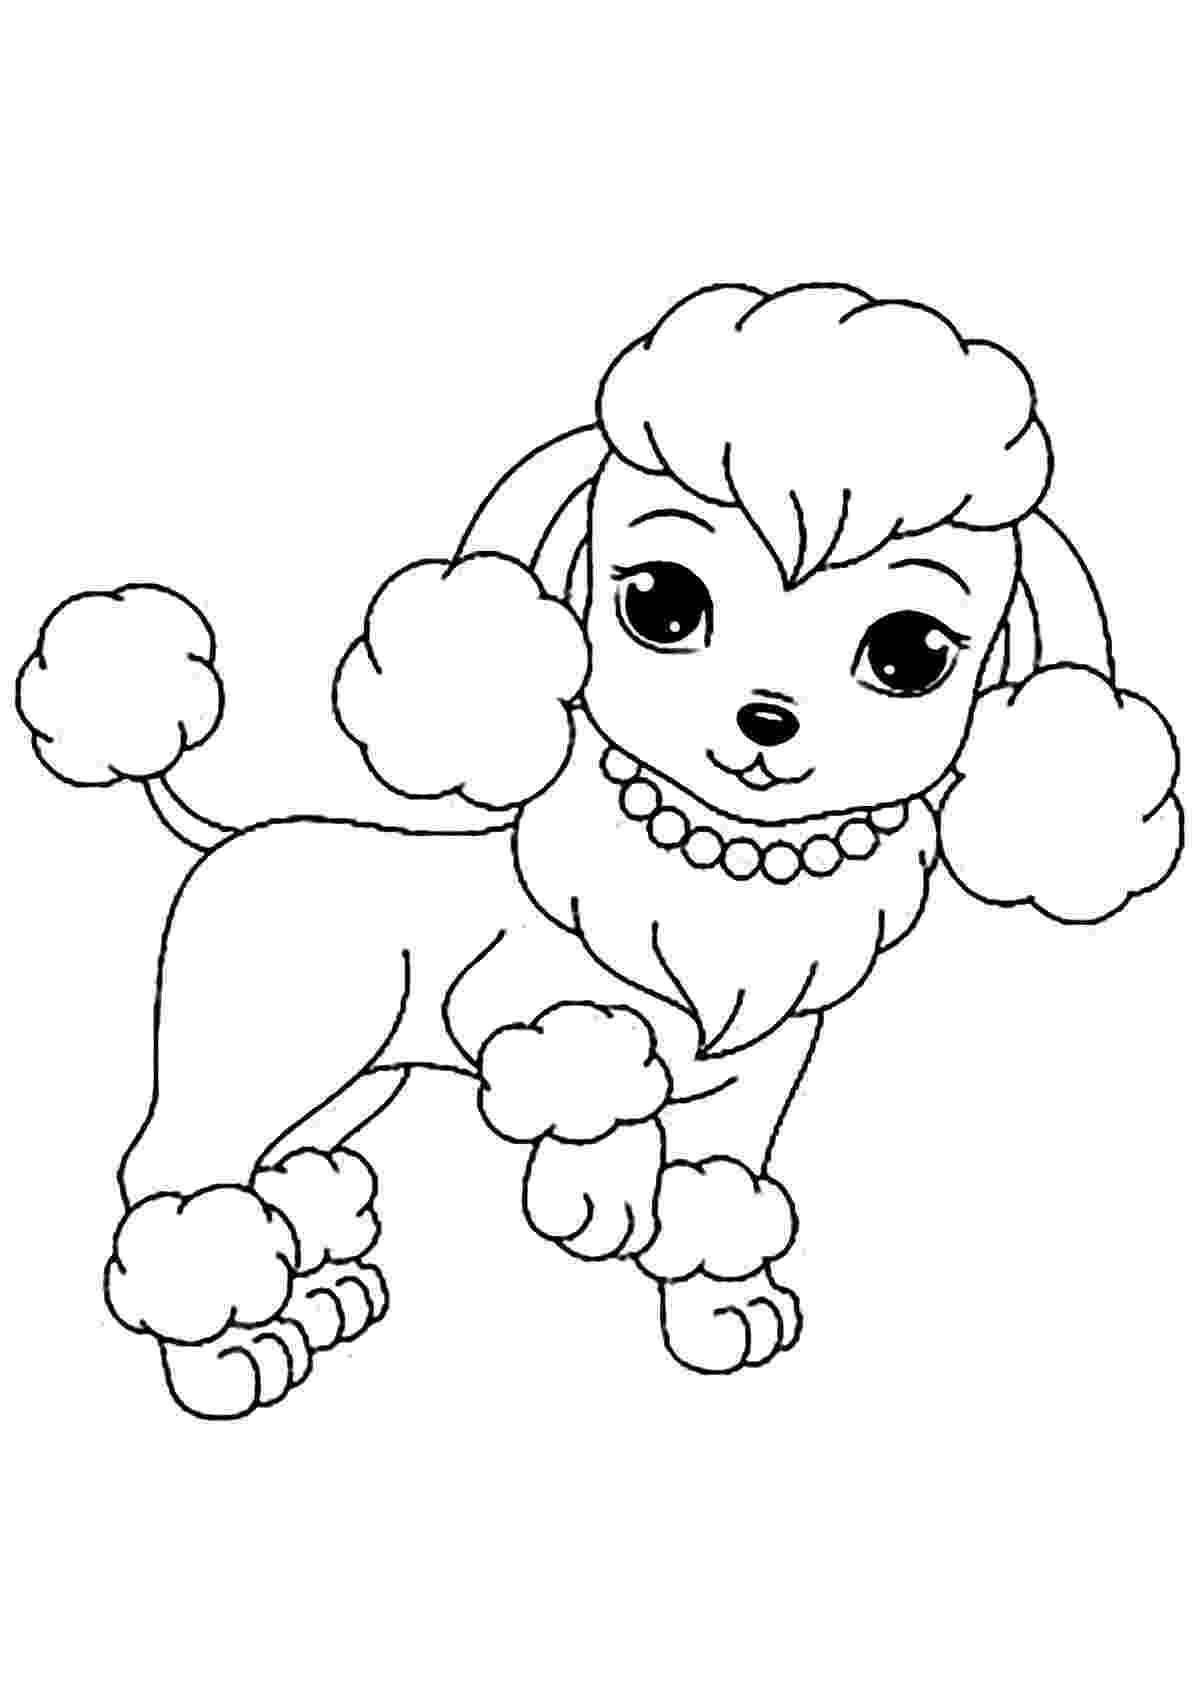 free online dog coloring pages dog with puppies coloring page to print dor free dog and online pages dog coloring free